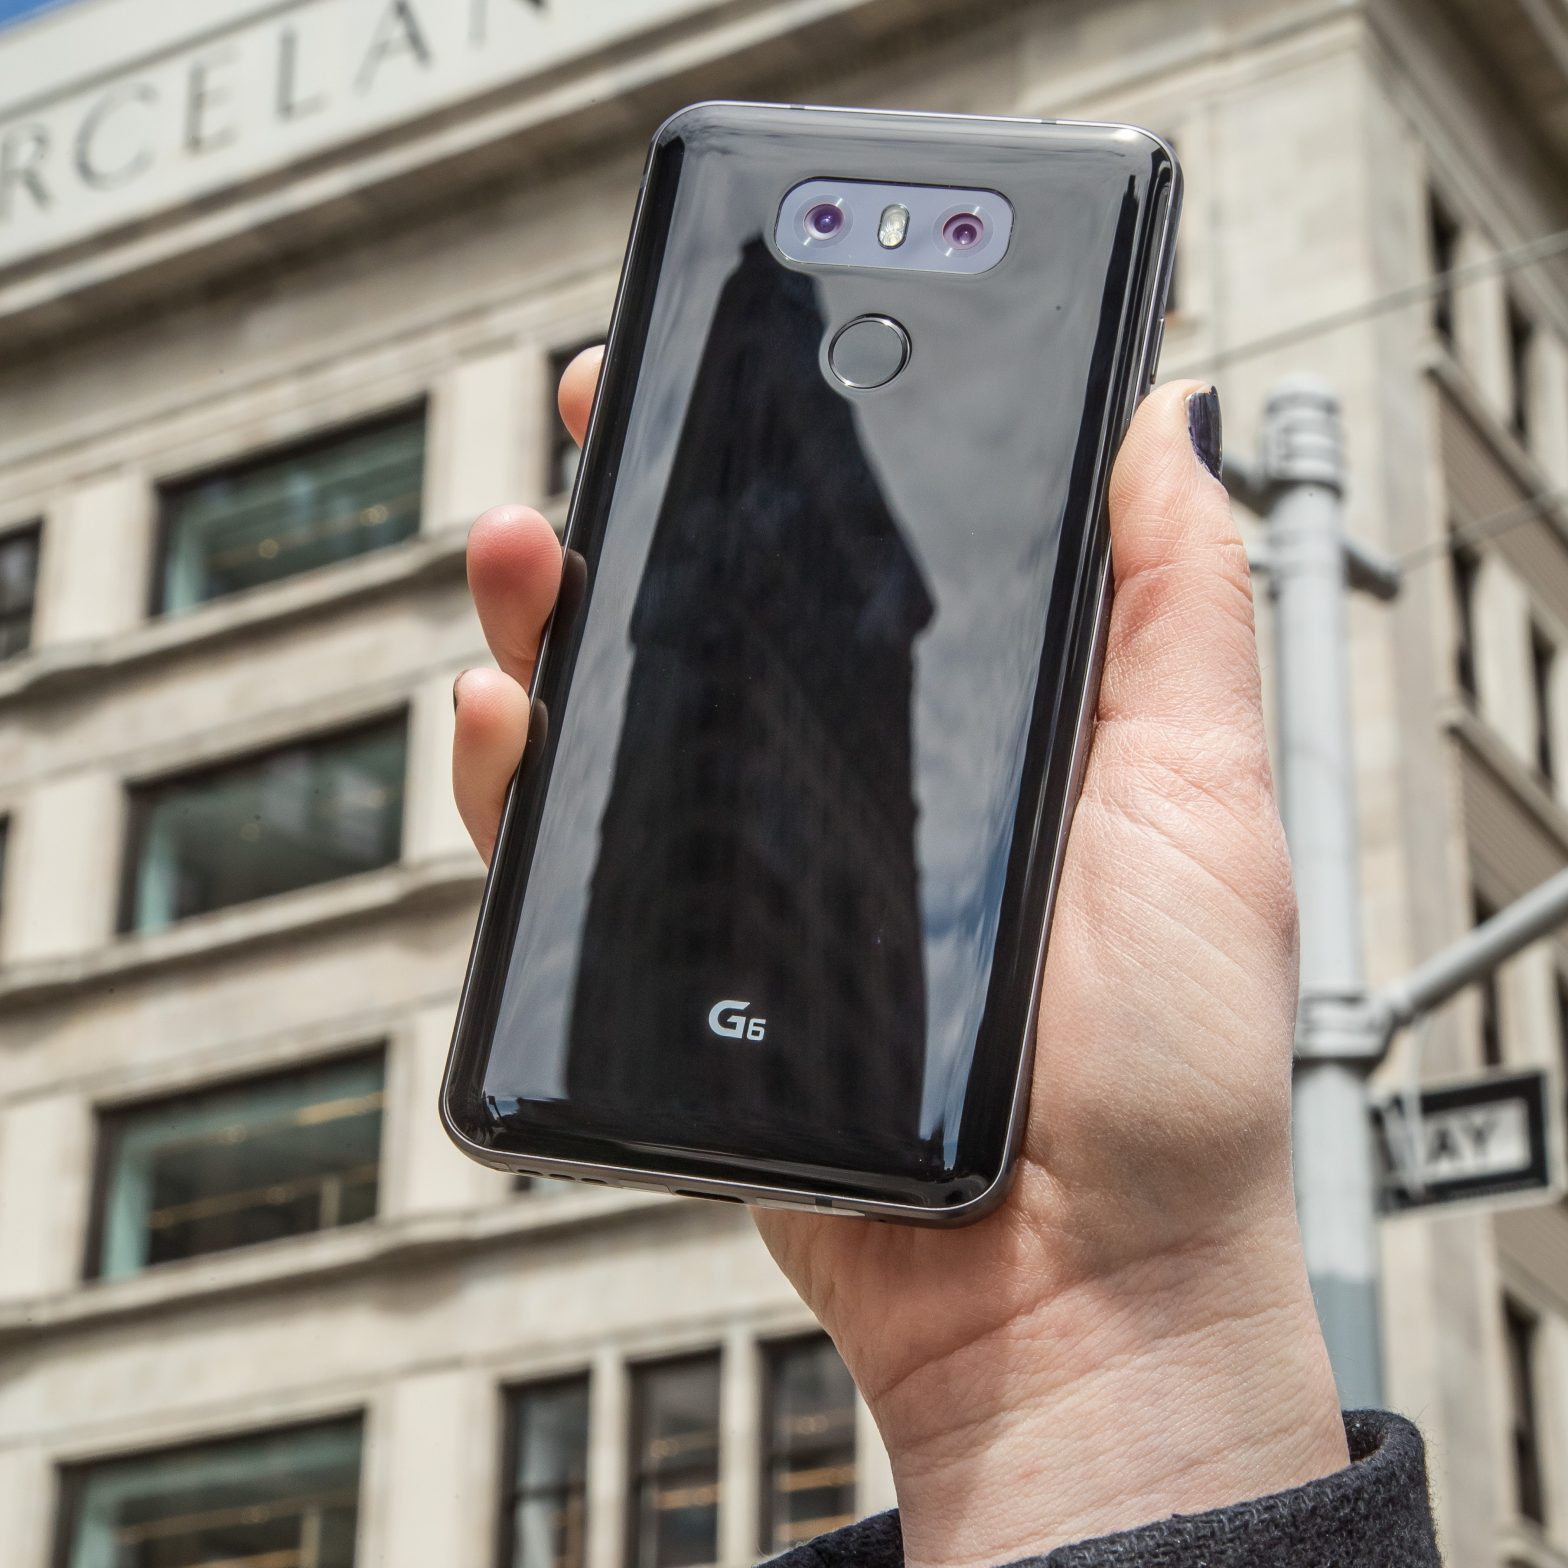 A person holds the LG G6 in Astro Black up in front of a New York building, showing off the back side of the device